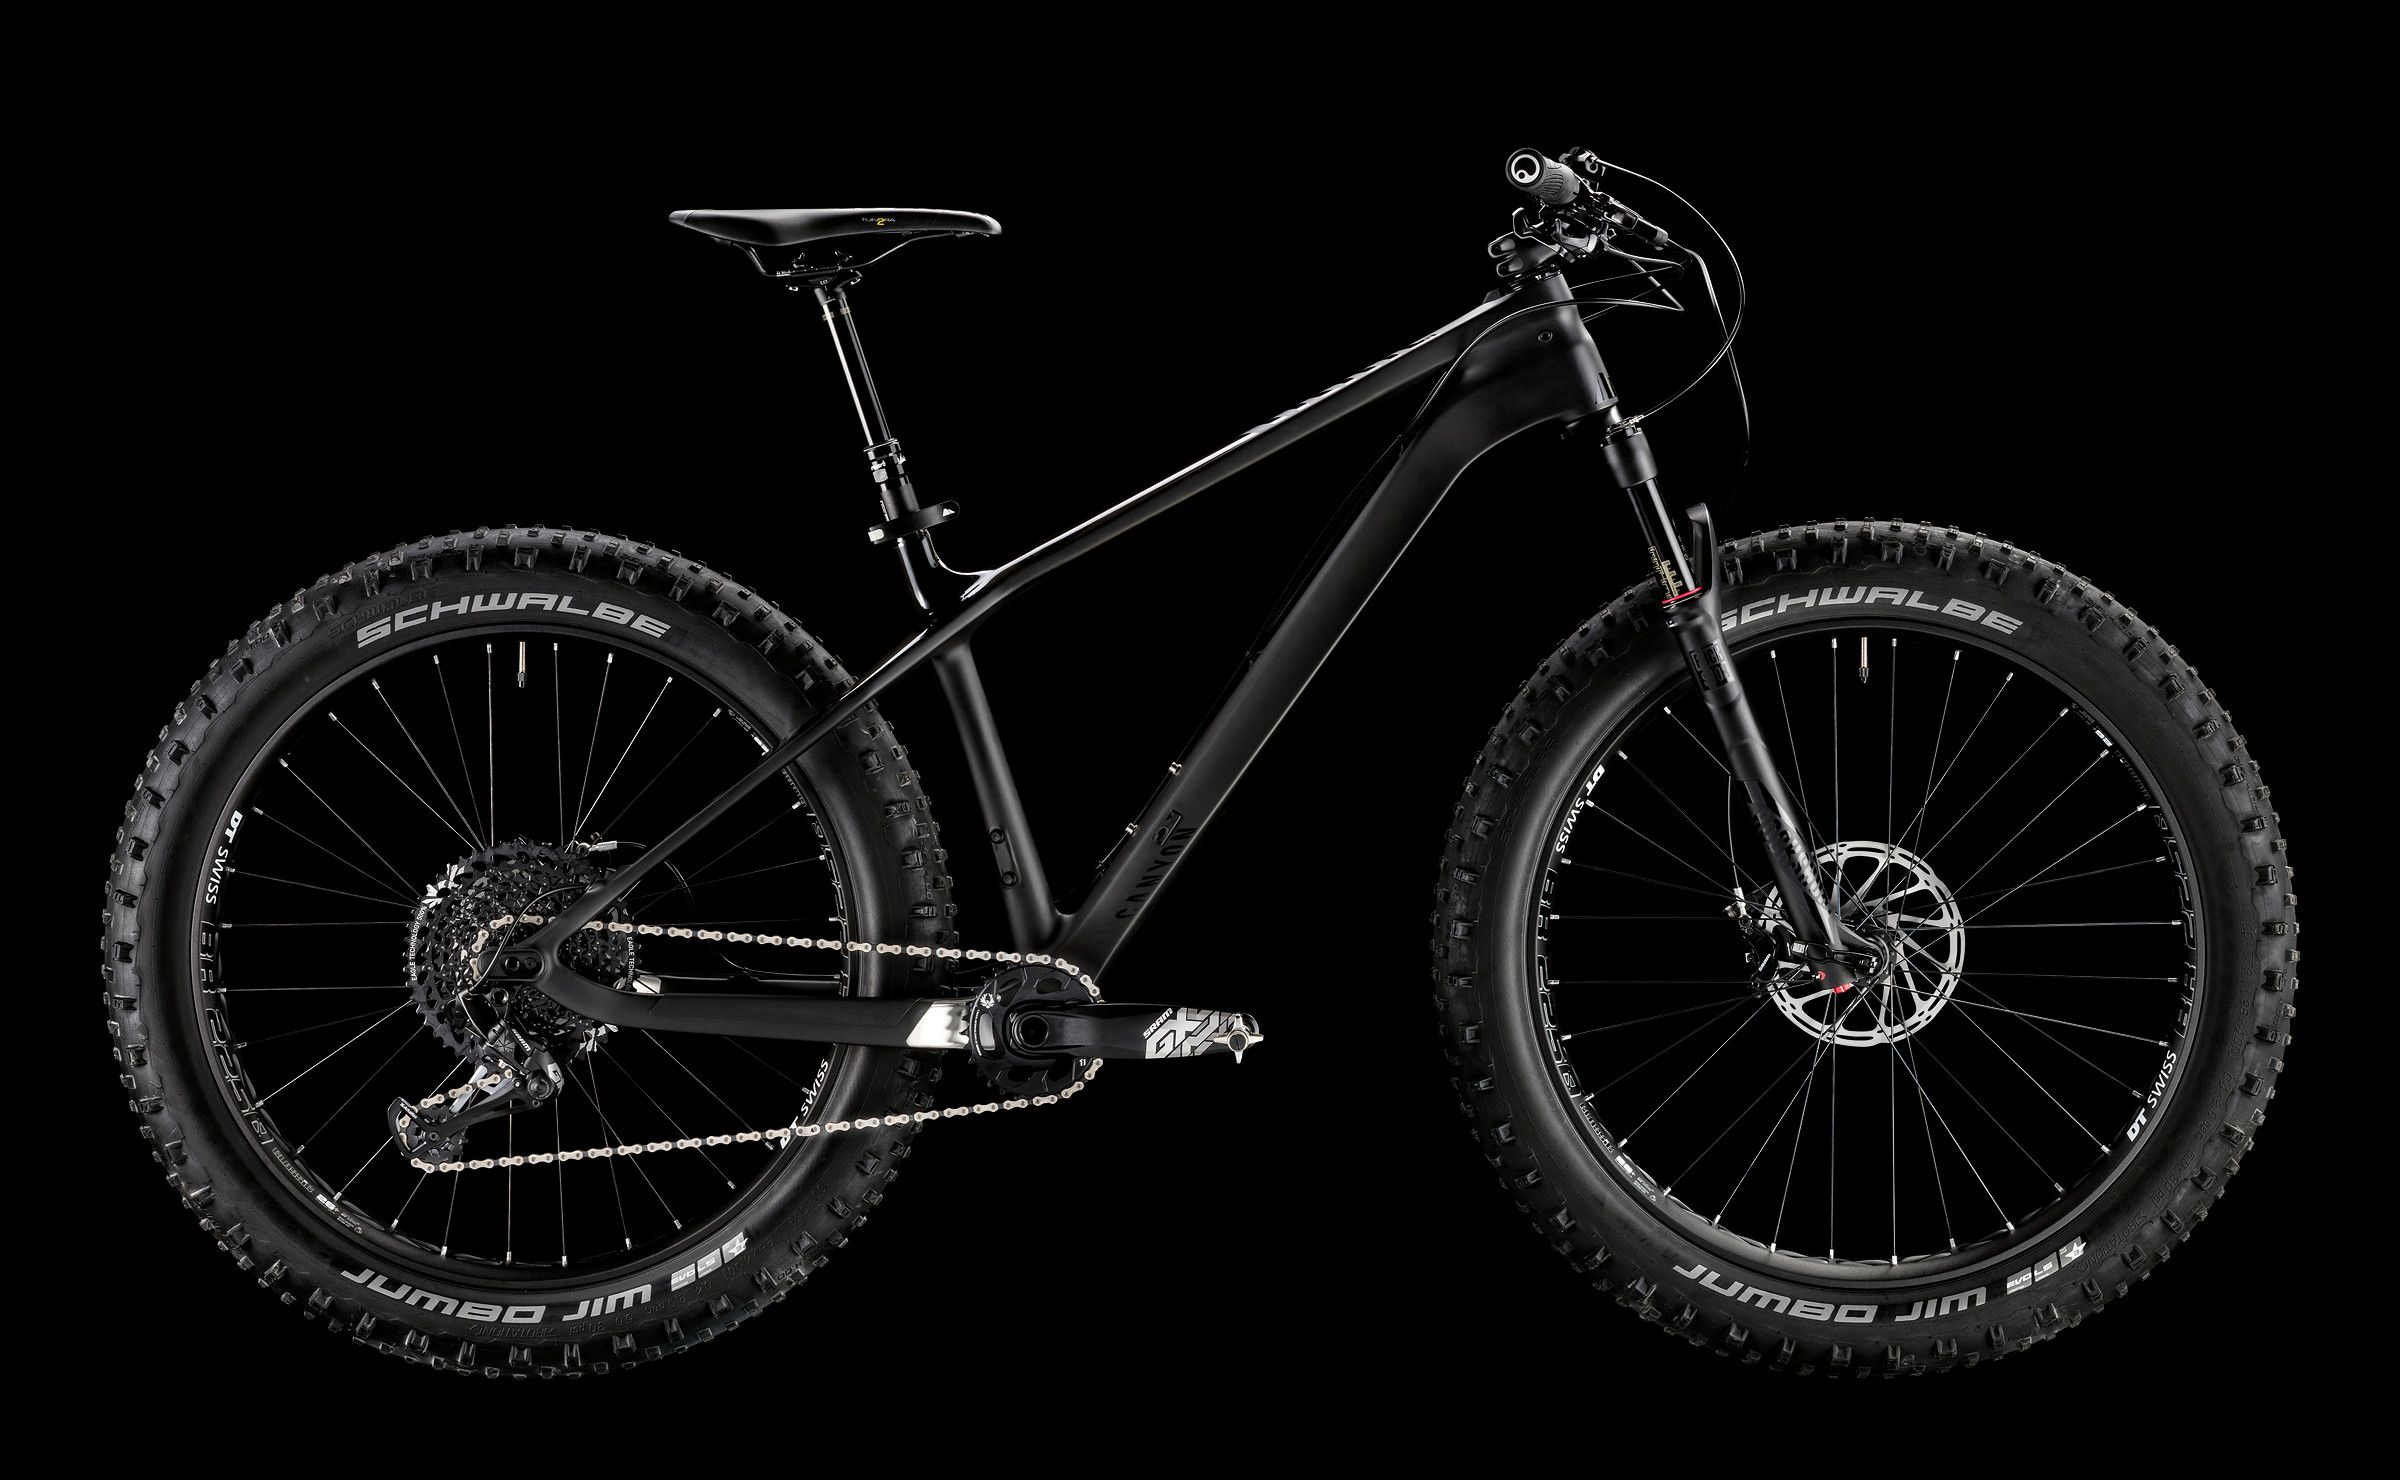 Canyon Dude 2018 CF 9.0 EX